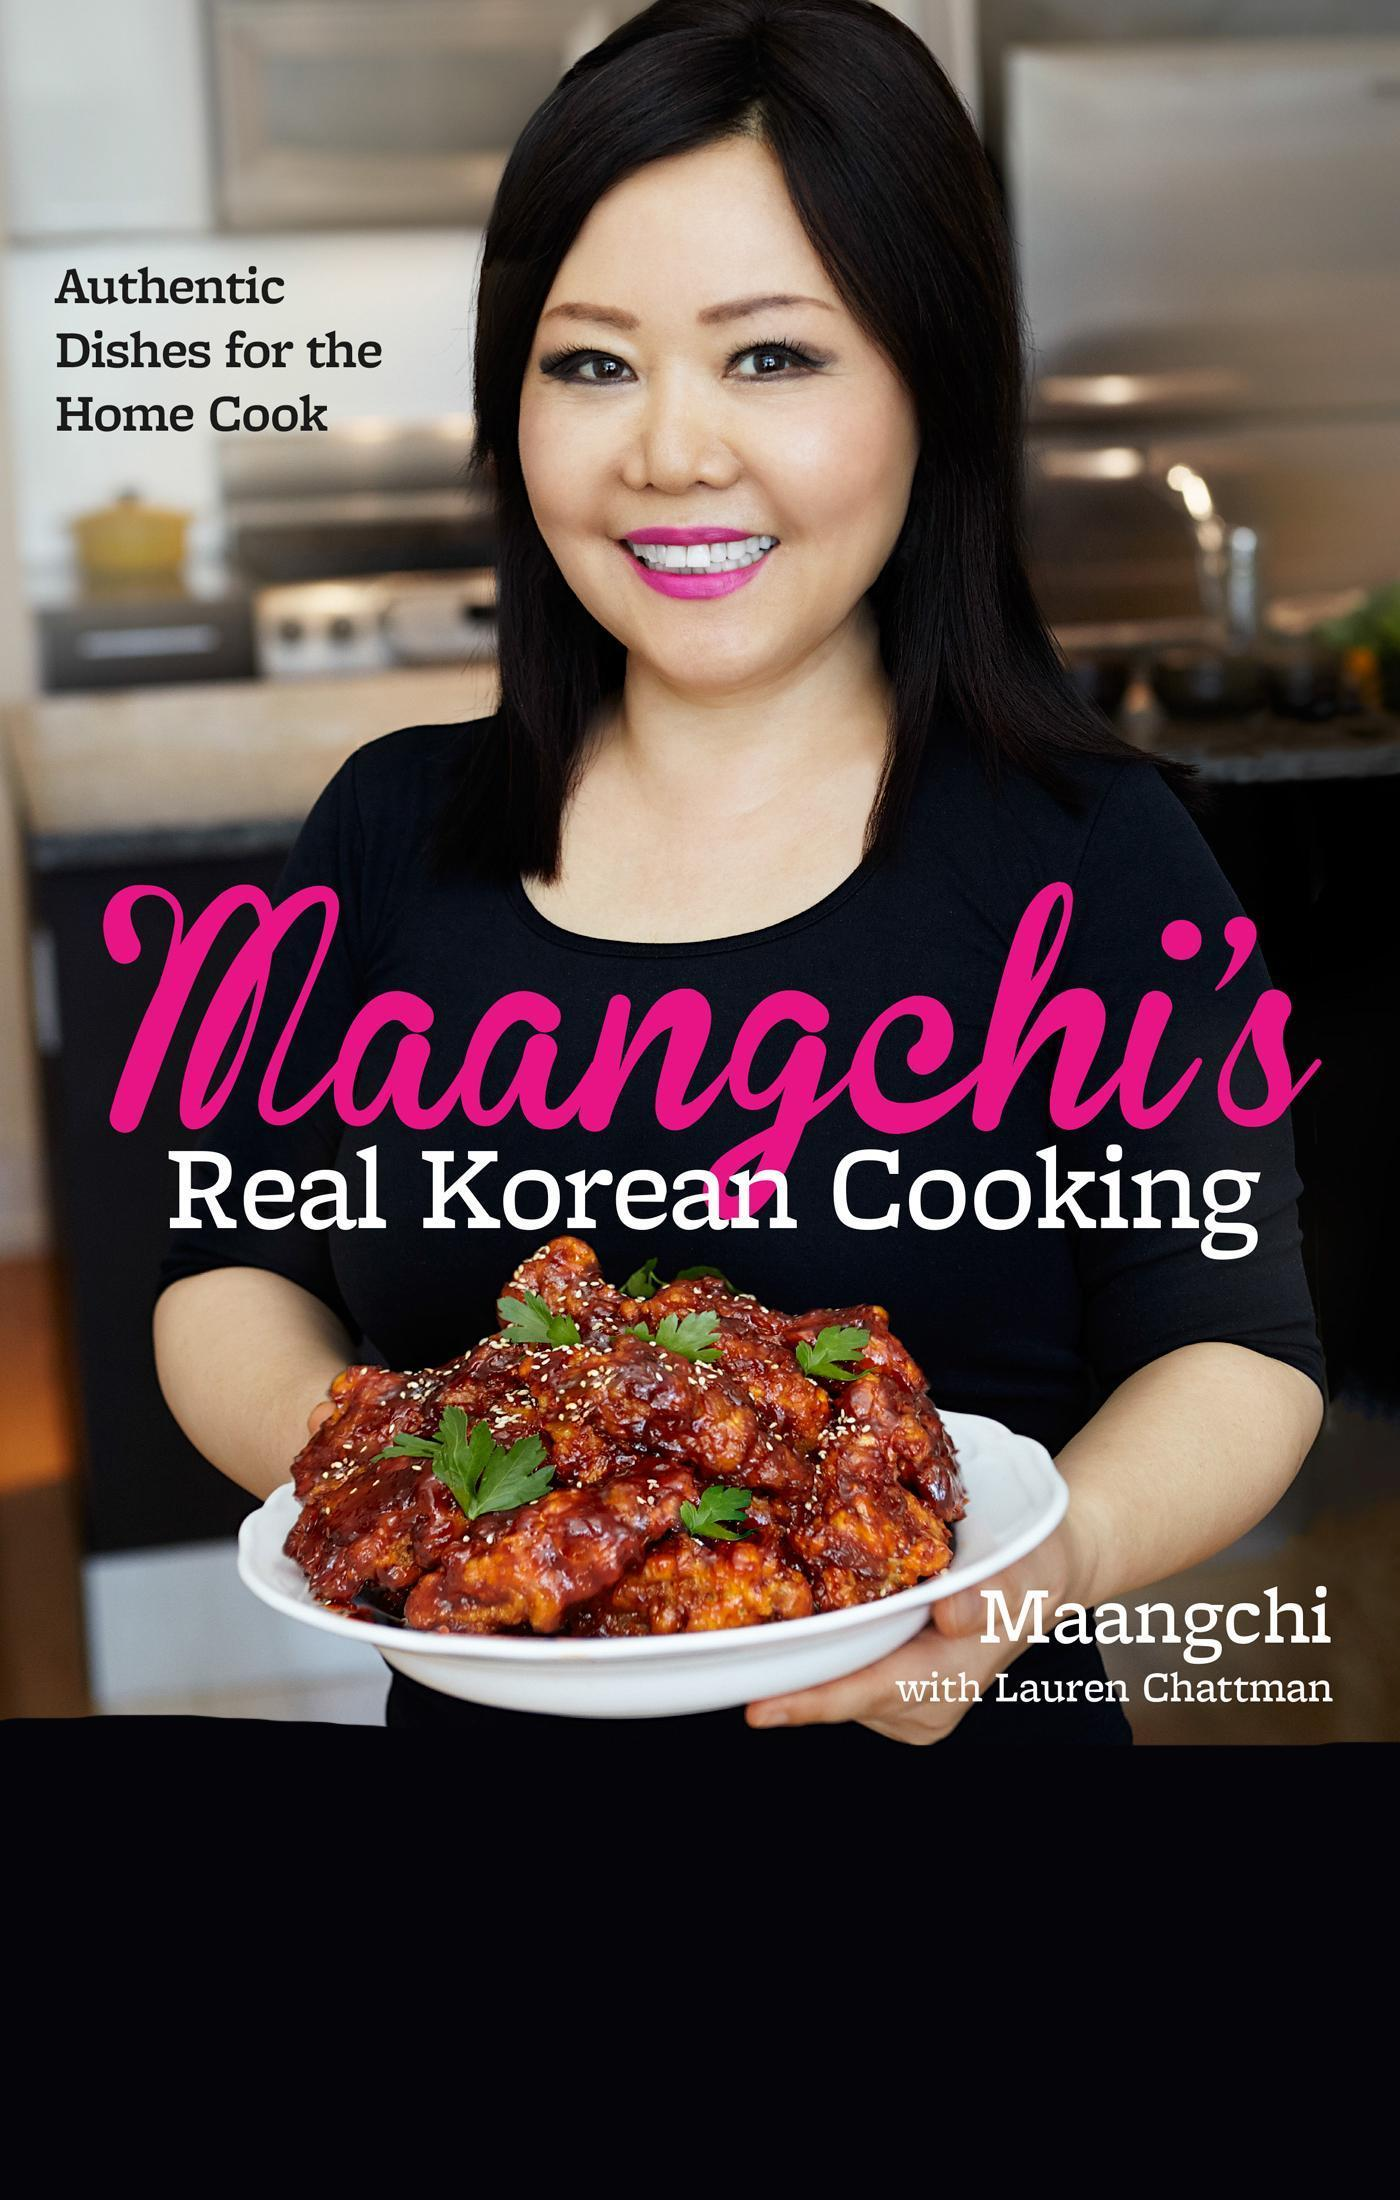 Youtube Cooking: Authentic Korean Dishes From Spunky YouTube Star Maangchi